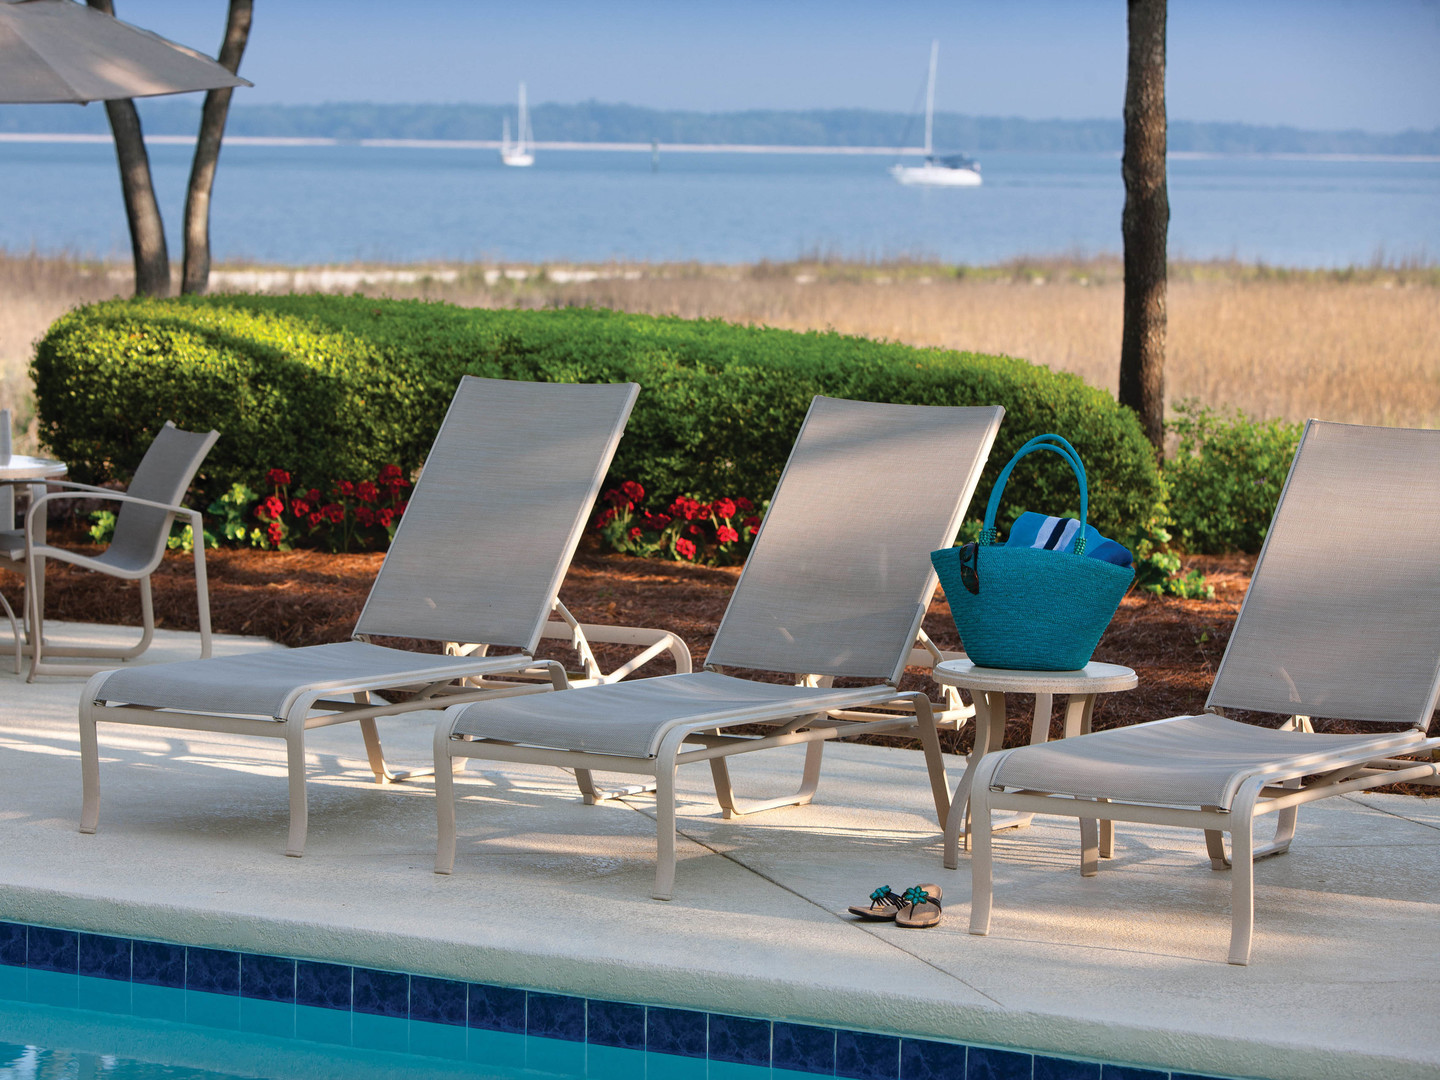 Marriott's Harbour Club Pool/Water View. Marriott's Harbour Club is located in Hilton Head Island, South Carolina United States.